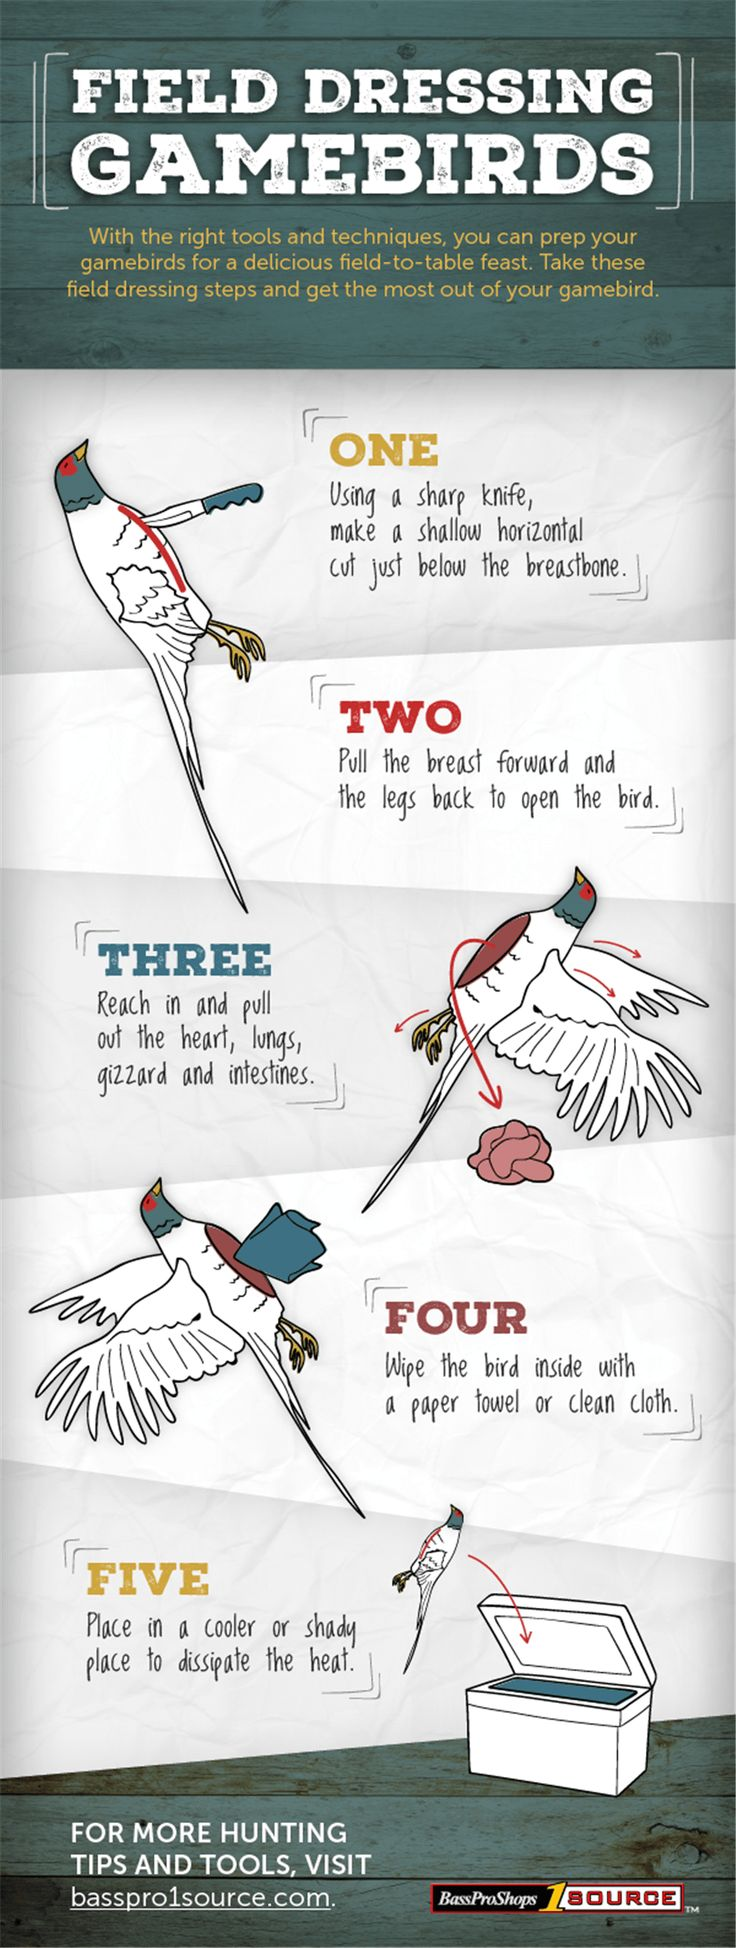 How to Field Dress Game Birds [INFOGRAPHIC] - Wide Open Spaces